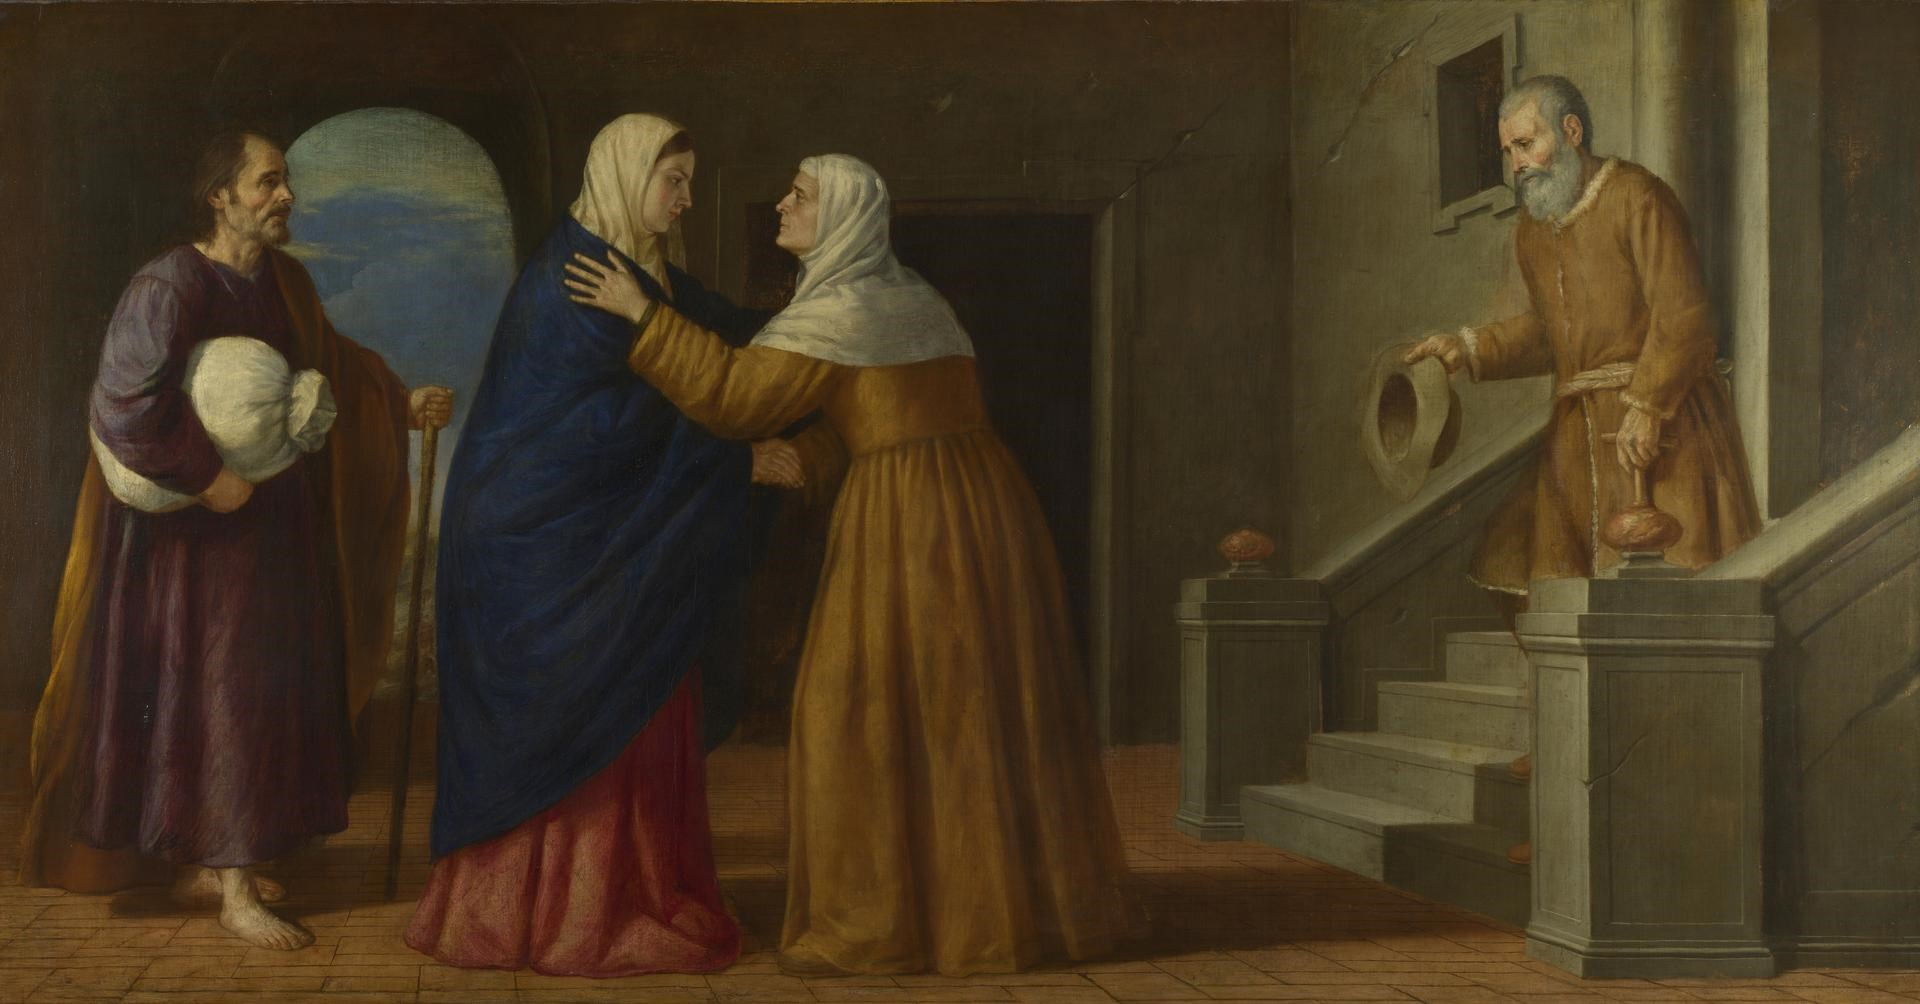 The Visitation by French or North Italian